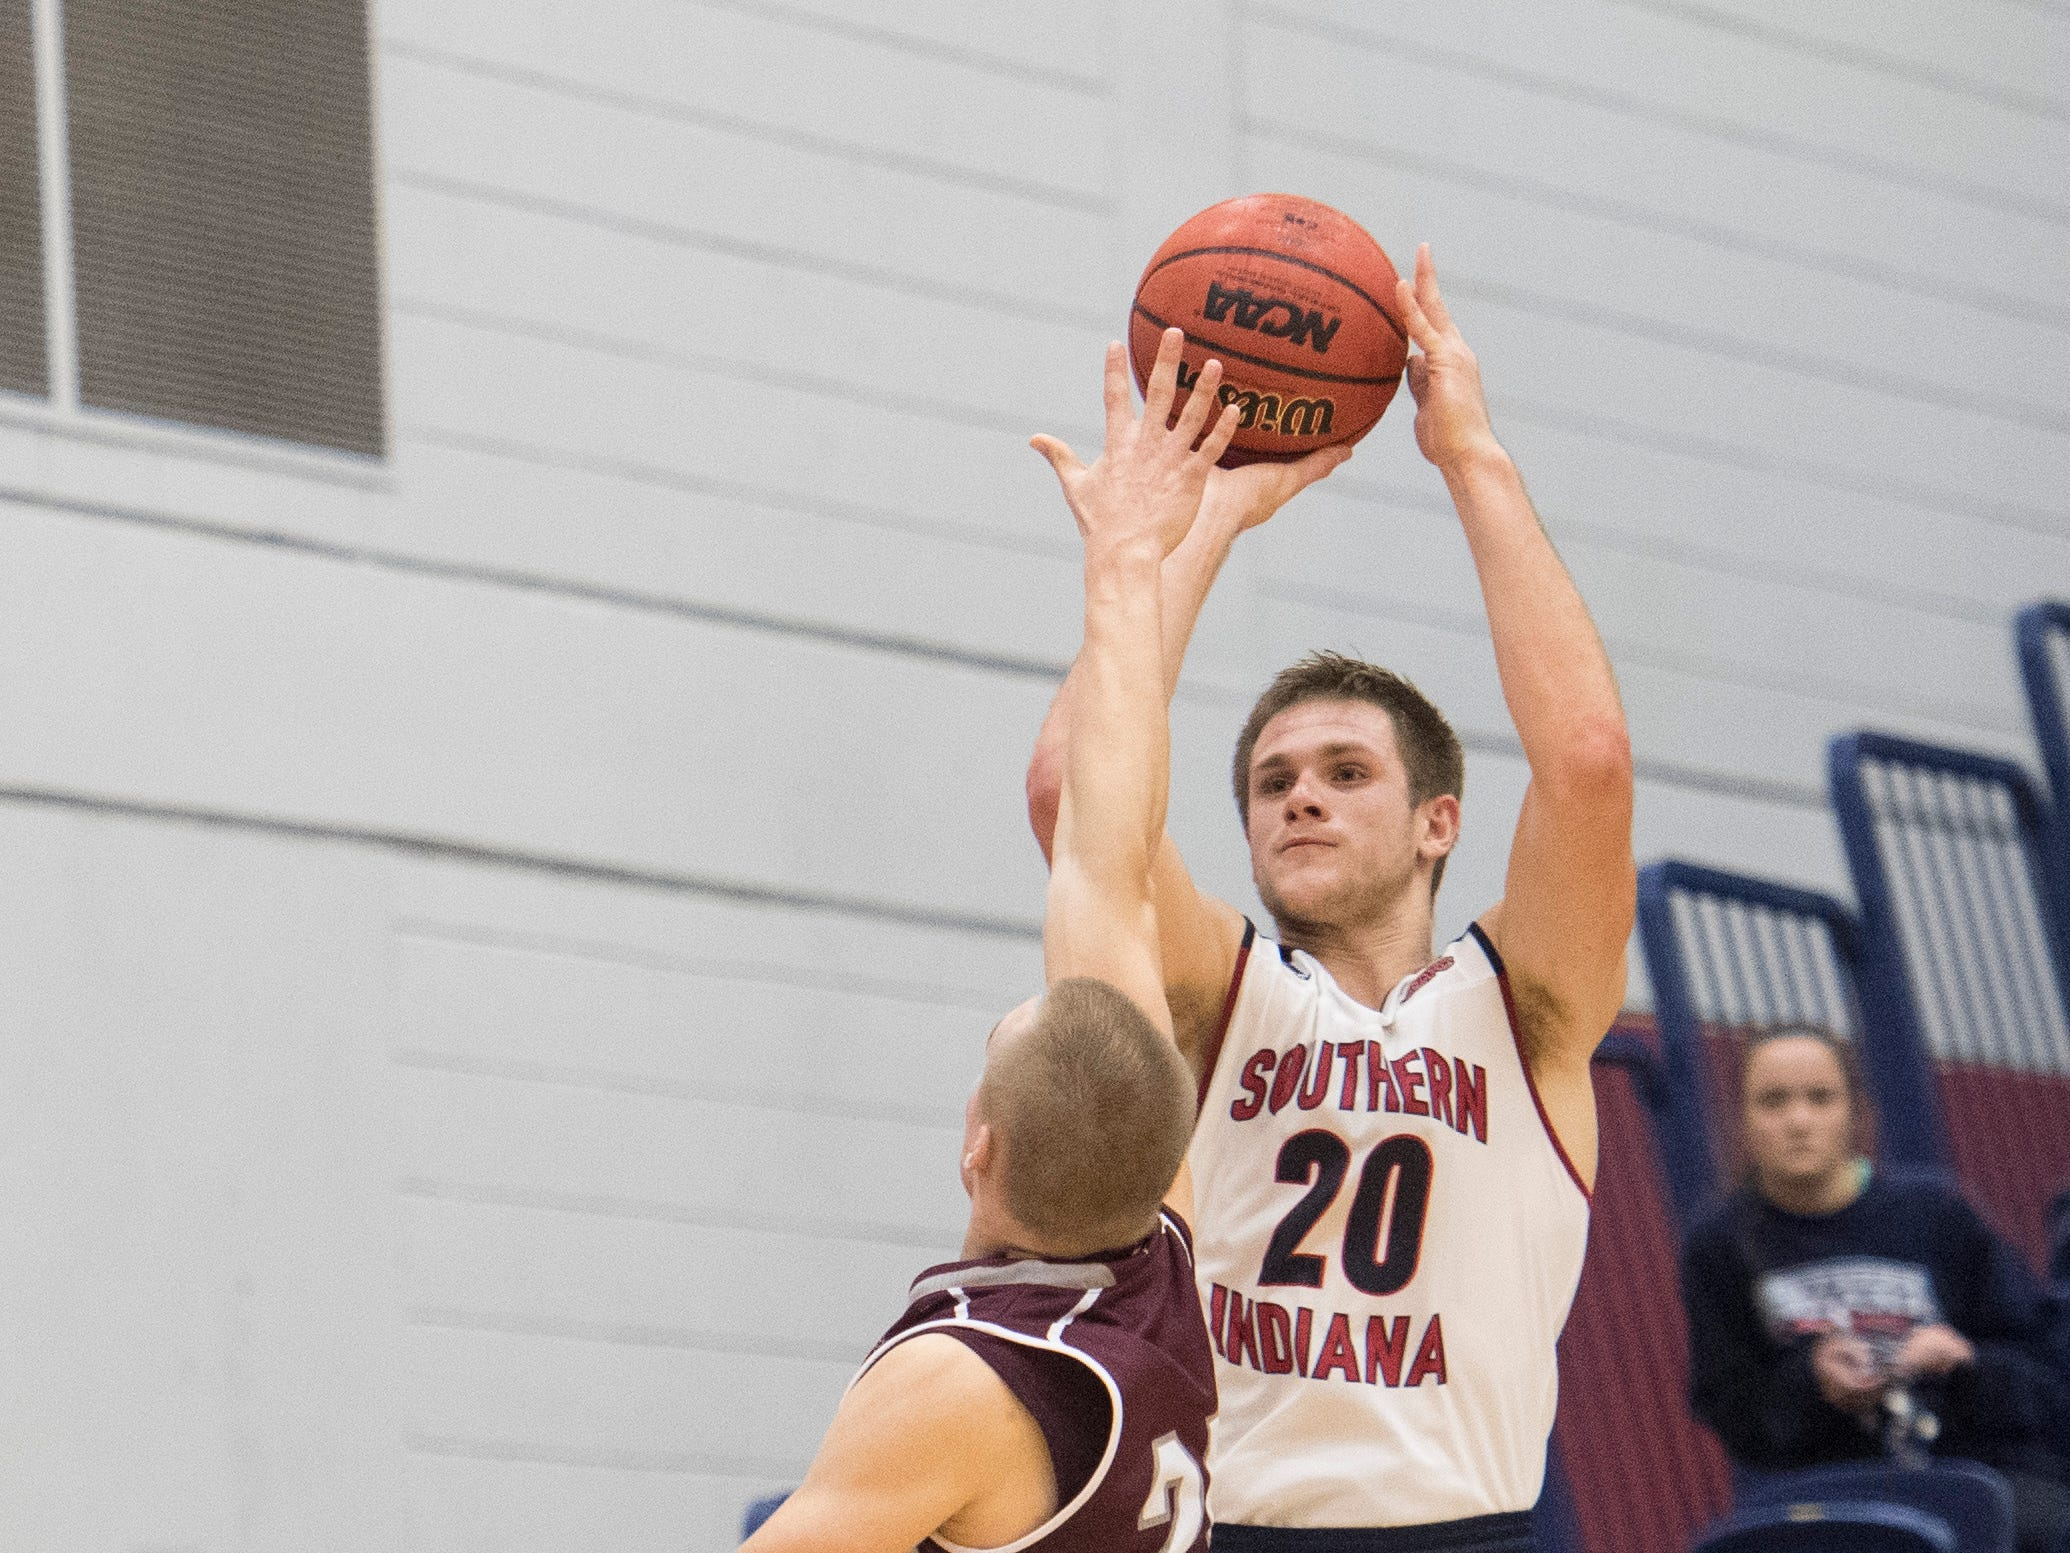 USI's Alex Stein (20) launches a 3-pointer during the USI vs Bellarmine game at the PAC Saturday, Dec. 1, 2018. USI lost 92-80.